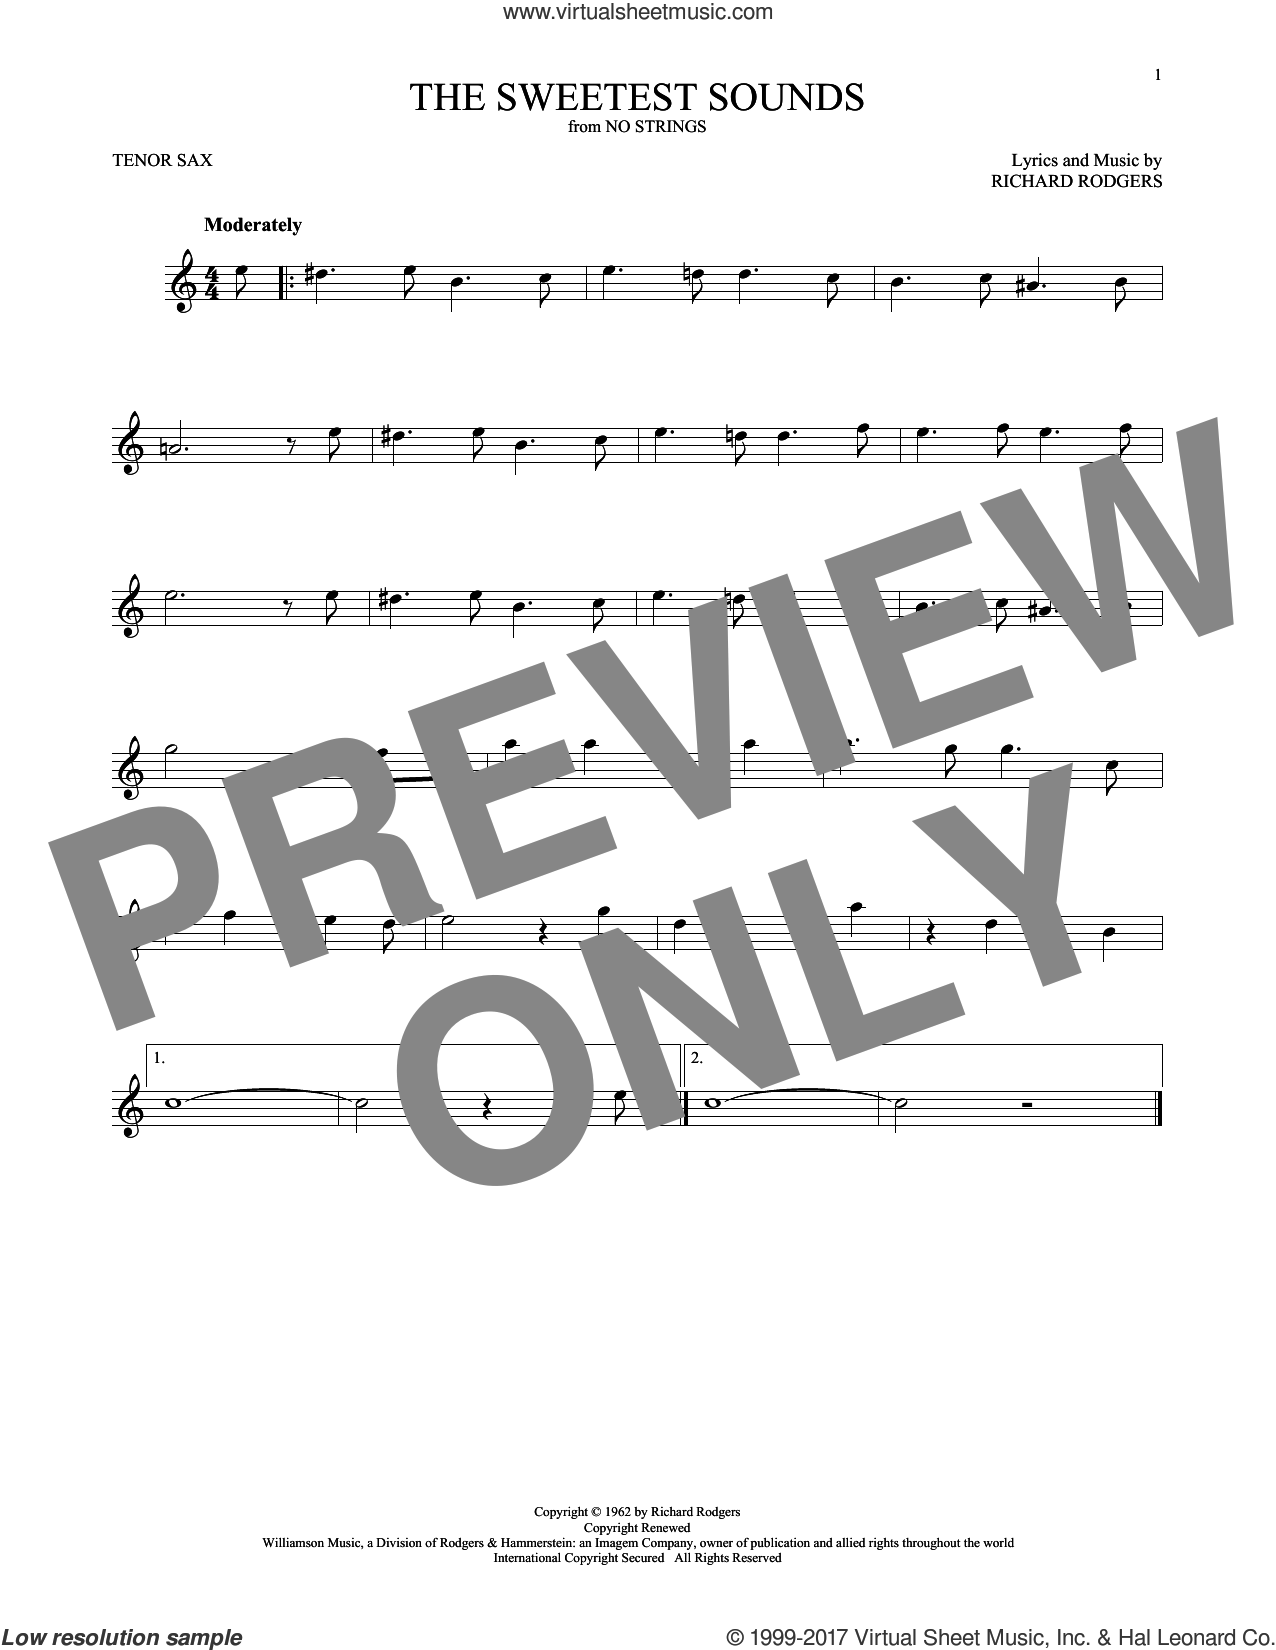 The Sweetest Sounds sheet music for tenor saxophone solo by Richard Rodgers, intermediate skill level